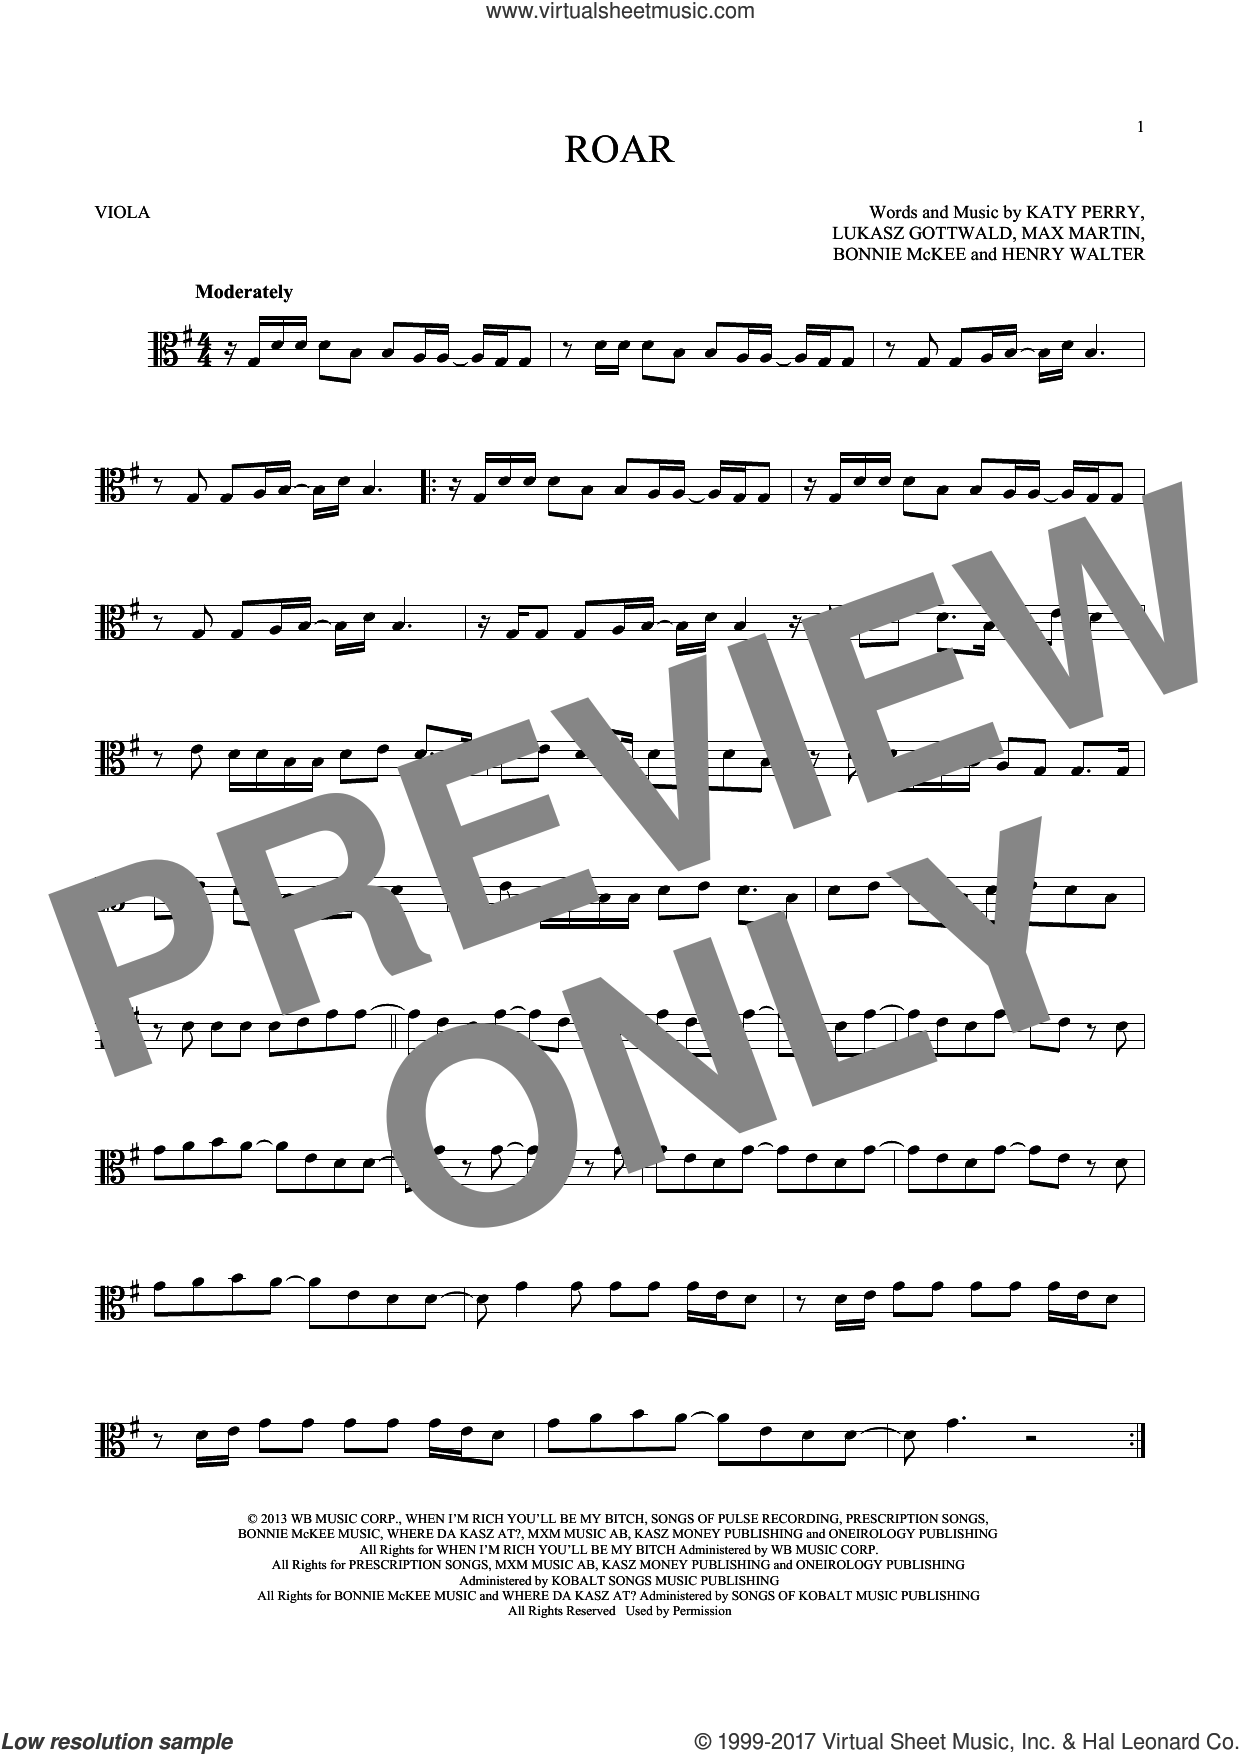 Roar sheet music for viola solo by Katy Perry, Bonnie McKee, Henry Walter, Lukasz Gottwald and Max Martin, intermediate skill level